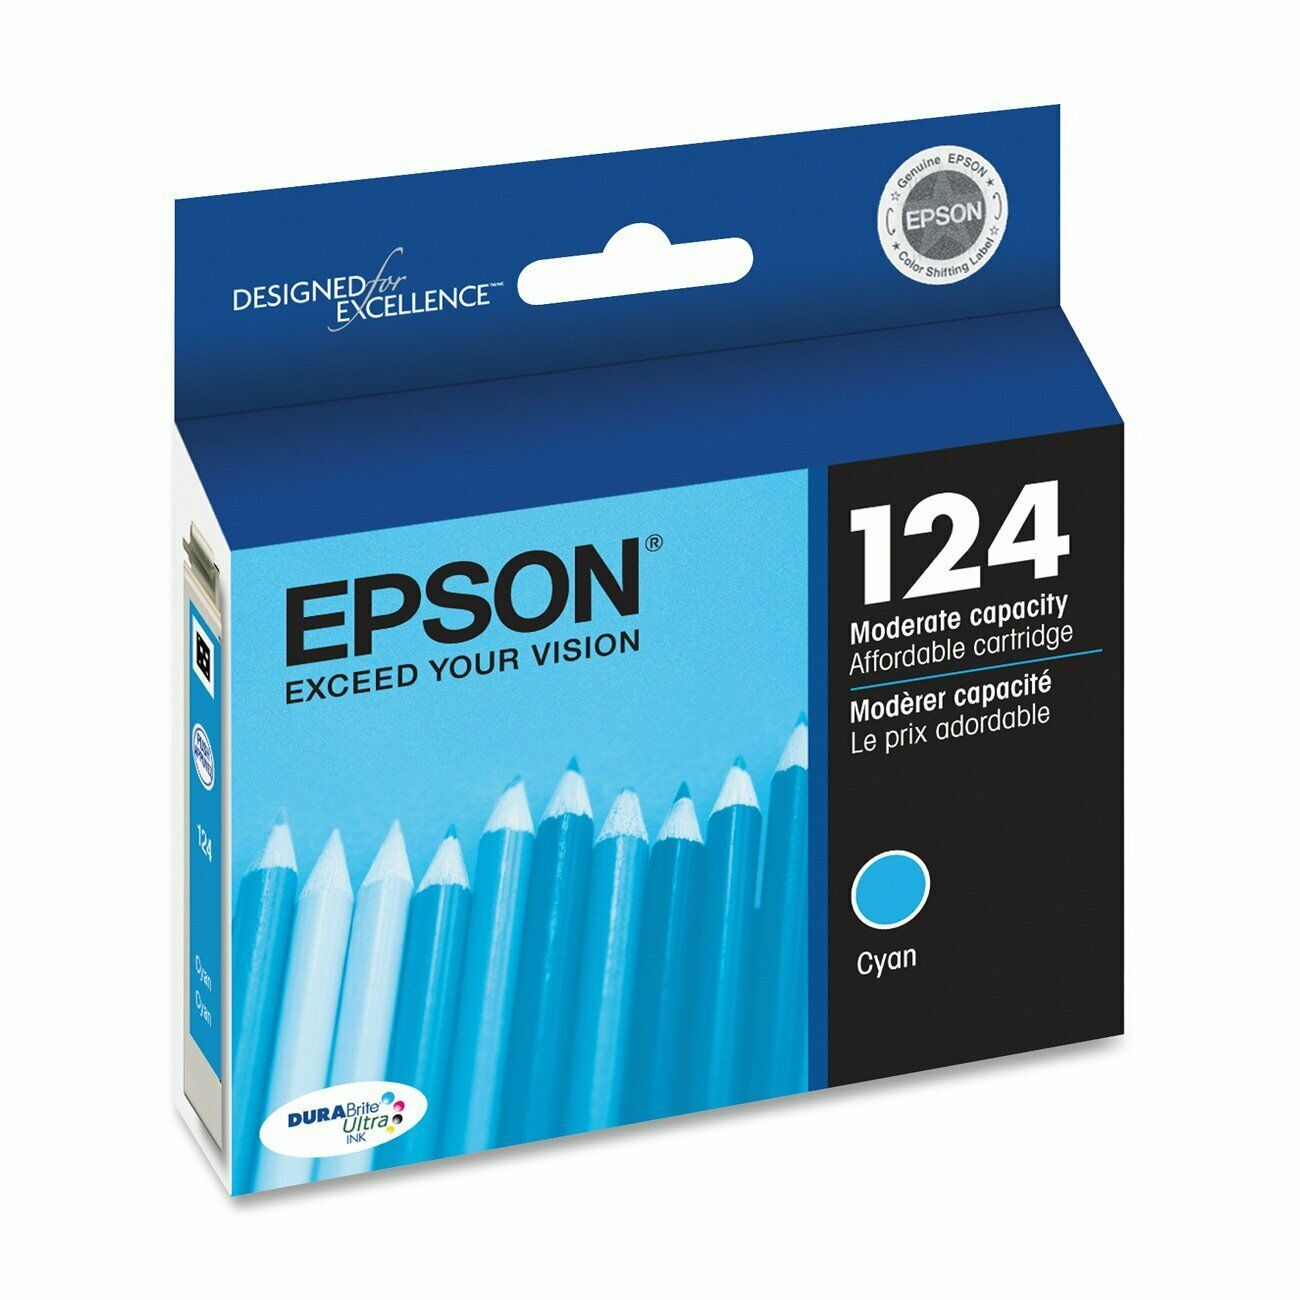 4-PACK Epson GENUINE 200XL Black /& 200 Color Ink WORKFORCE 2520 NO RETAIL BOX